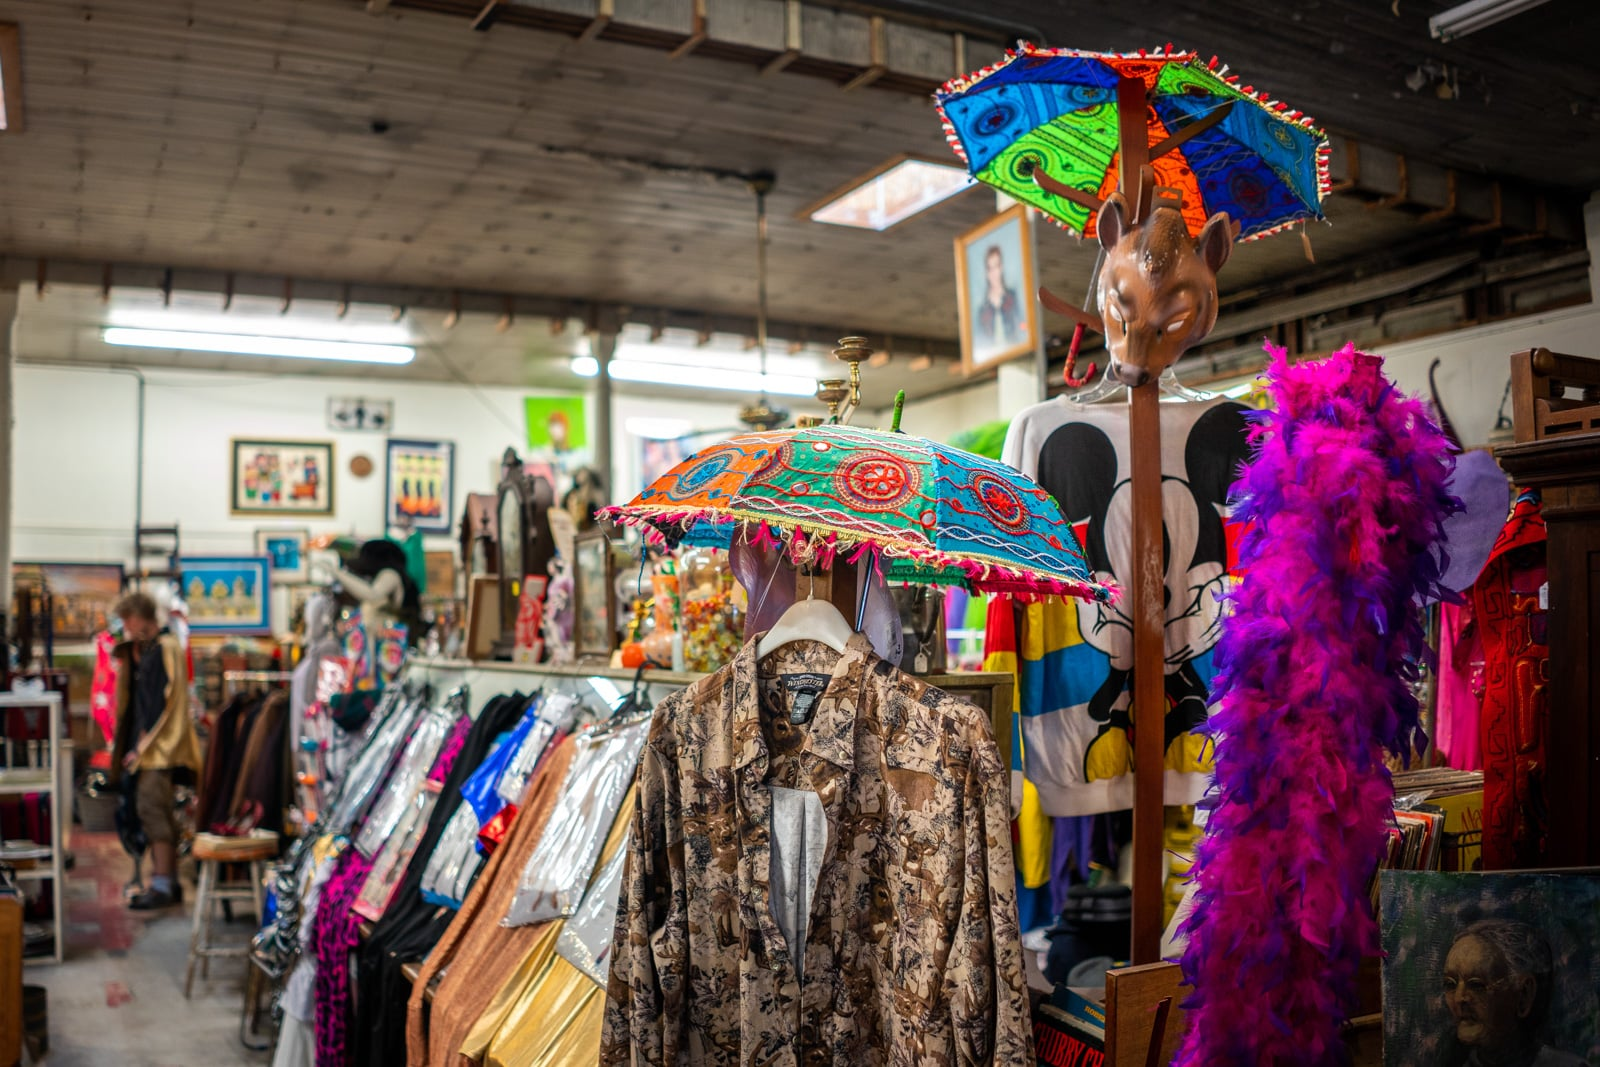 Second-hand shop in the Marigny neighborhood of New Orleans, Louisiana